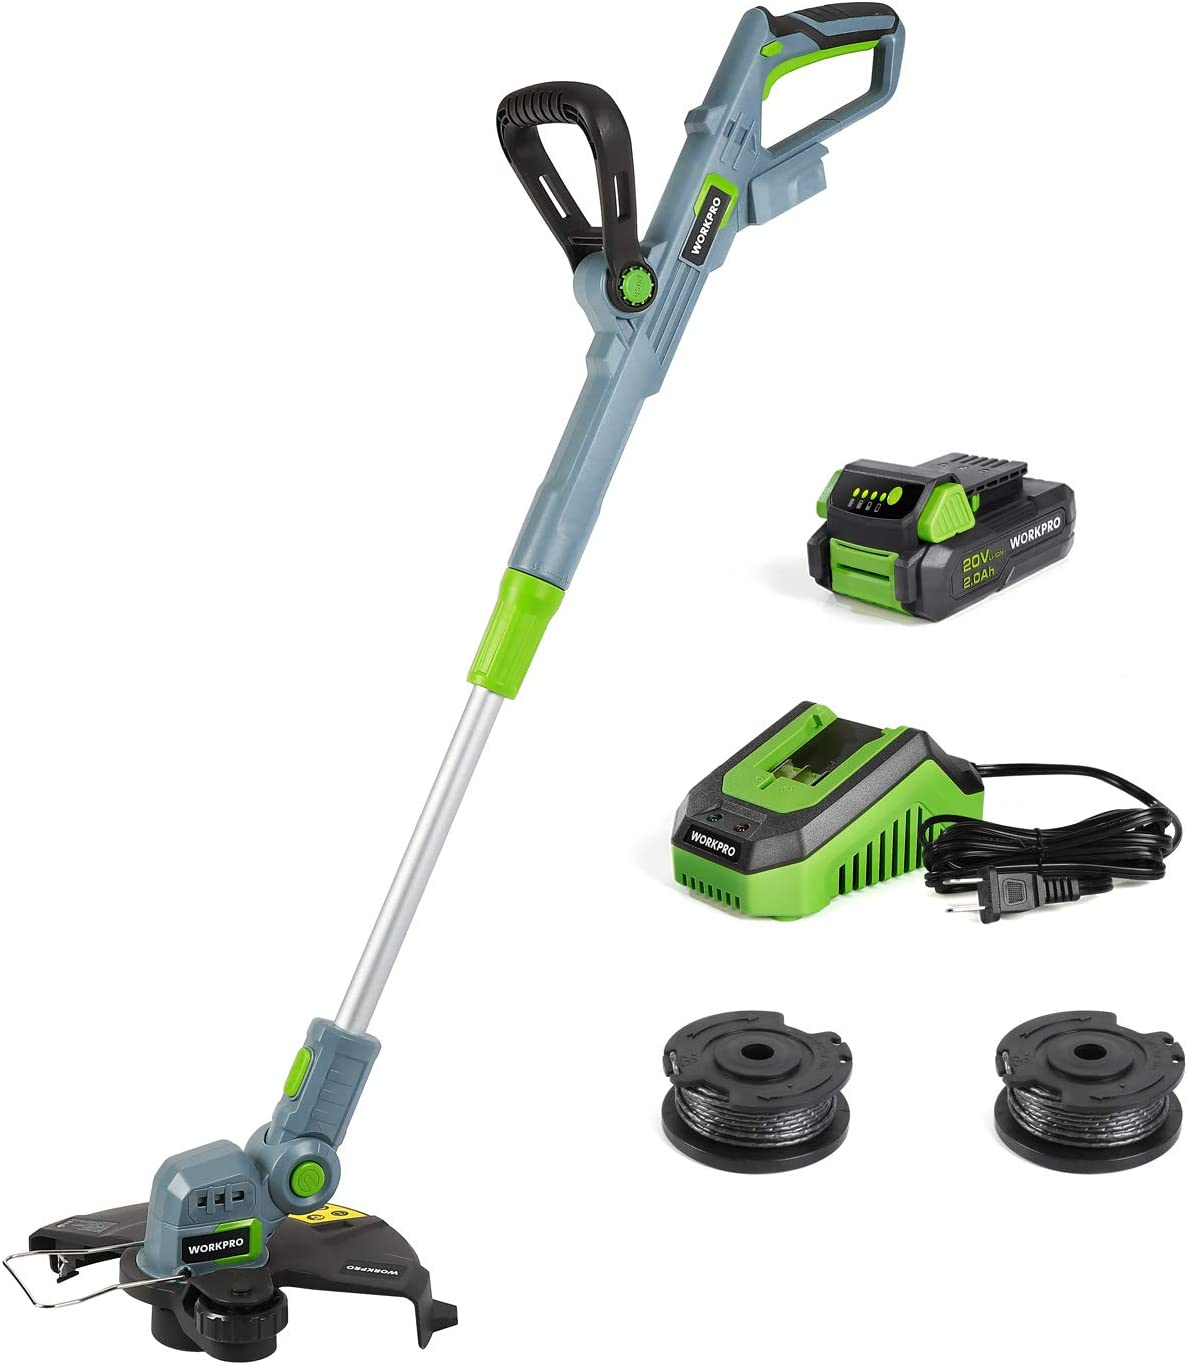 WORKPRO 20V Cordless String Trimmer/Edger, 12-inch, with 2Ah Lithium-Ion Battery, 1 Hour Quick Charger, 16.4ft Trimmer Line Included